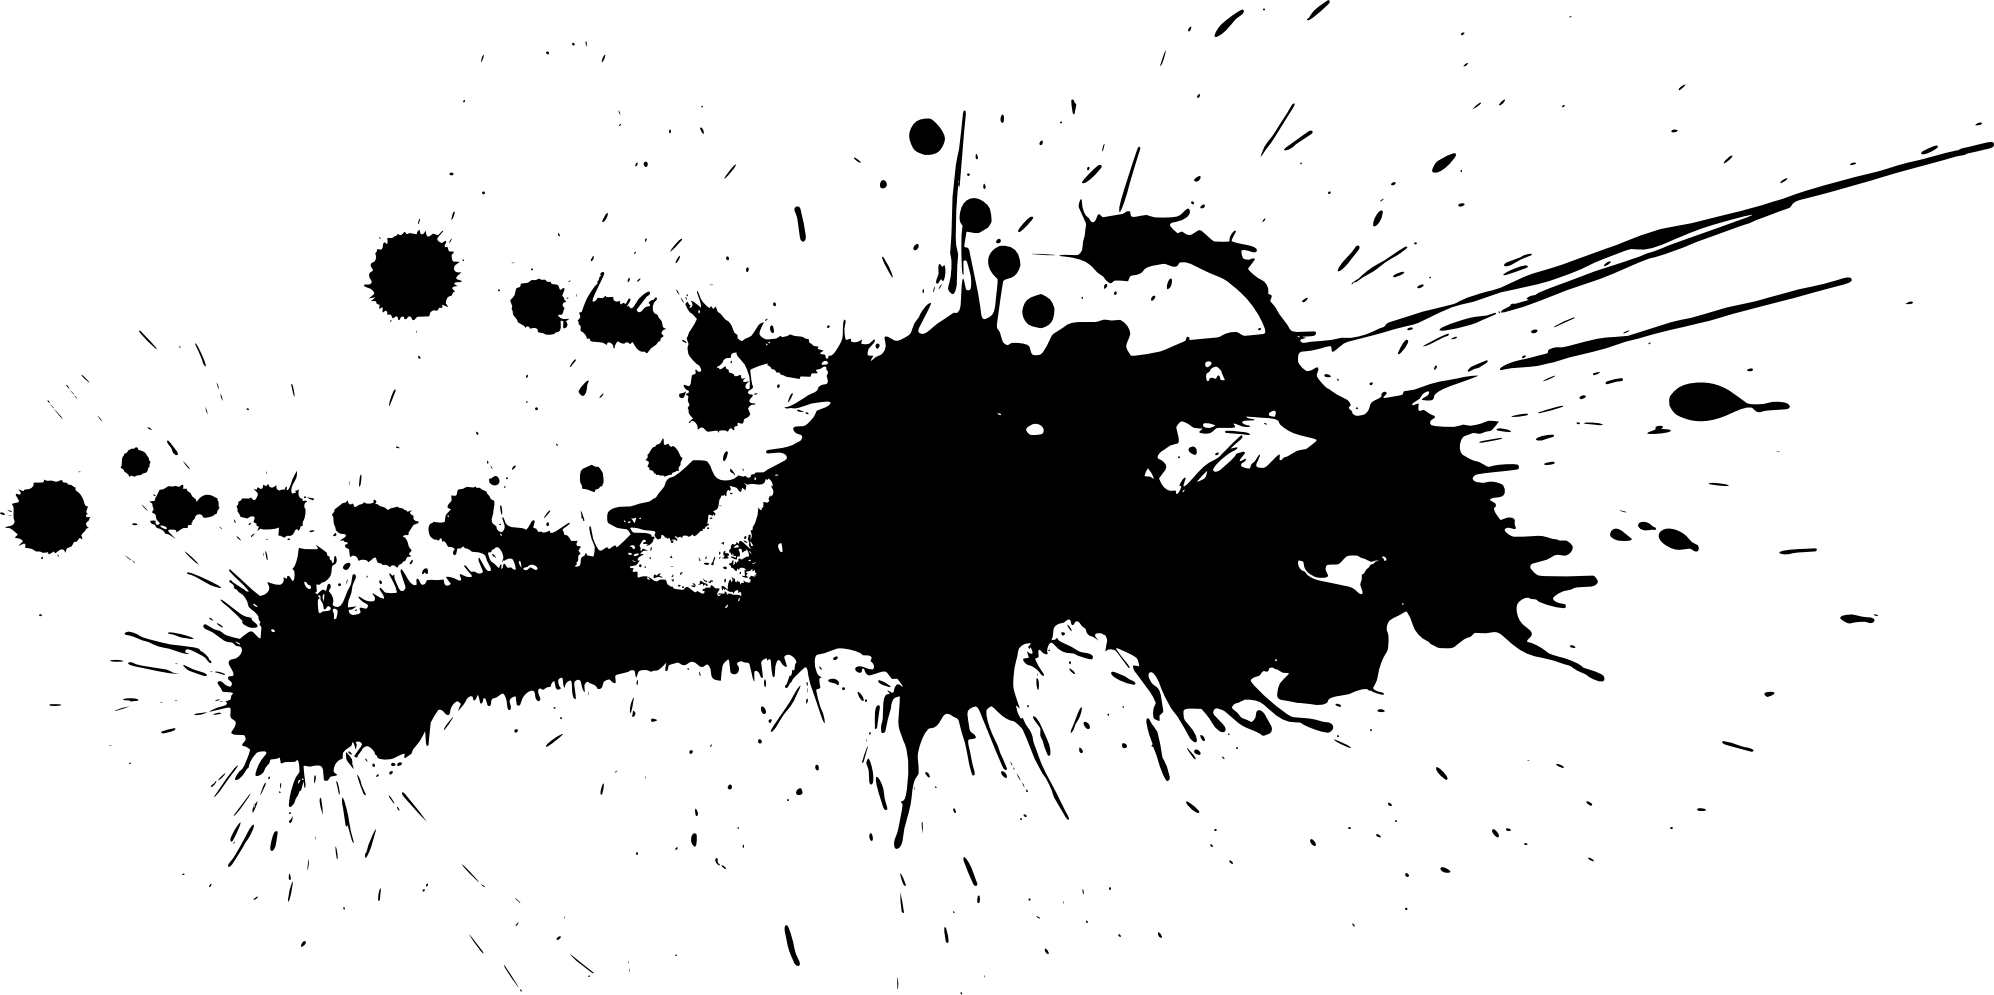 Paint splatter png. Transparent images splatterpng pluspng